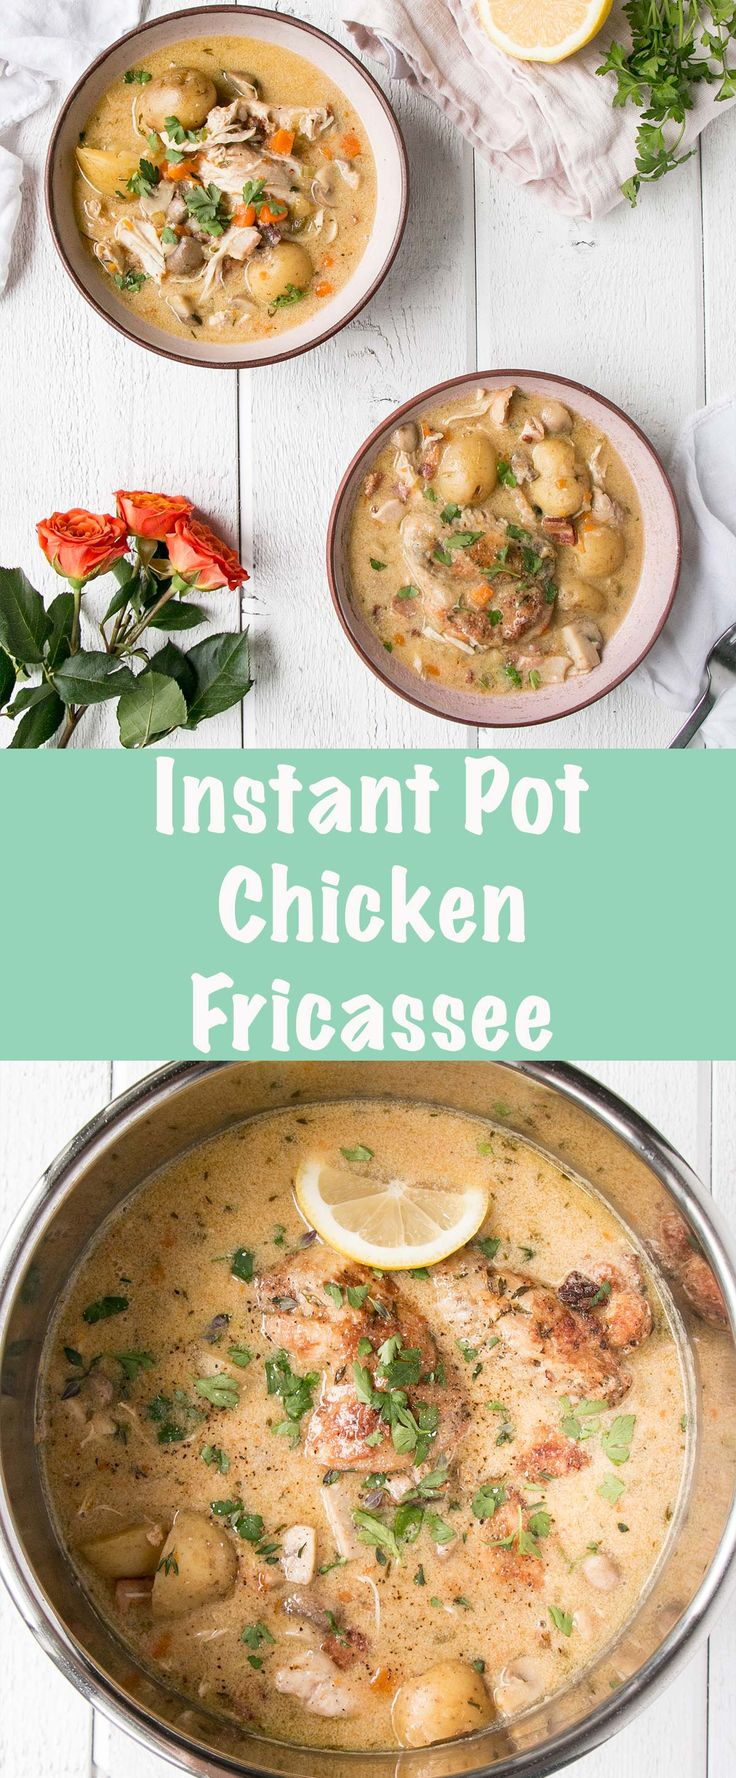 Instant Pot Chicken Fricassee is a classic French Chicken Stew made easy and quick thanks to the Instant Pot! #chicken #stew #instantpot